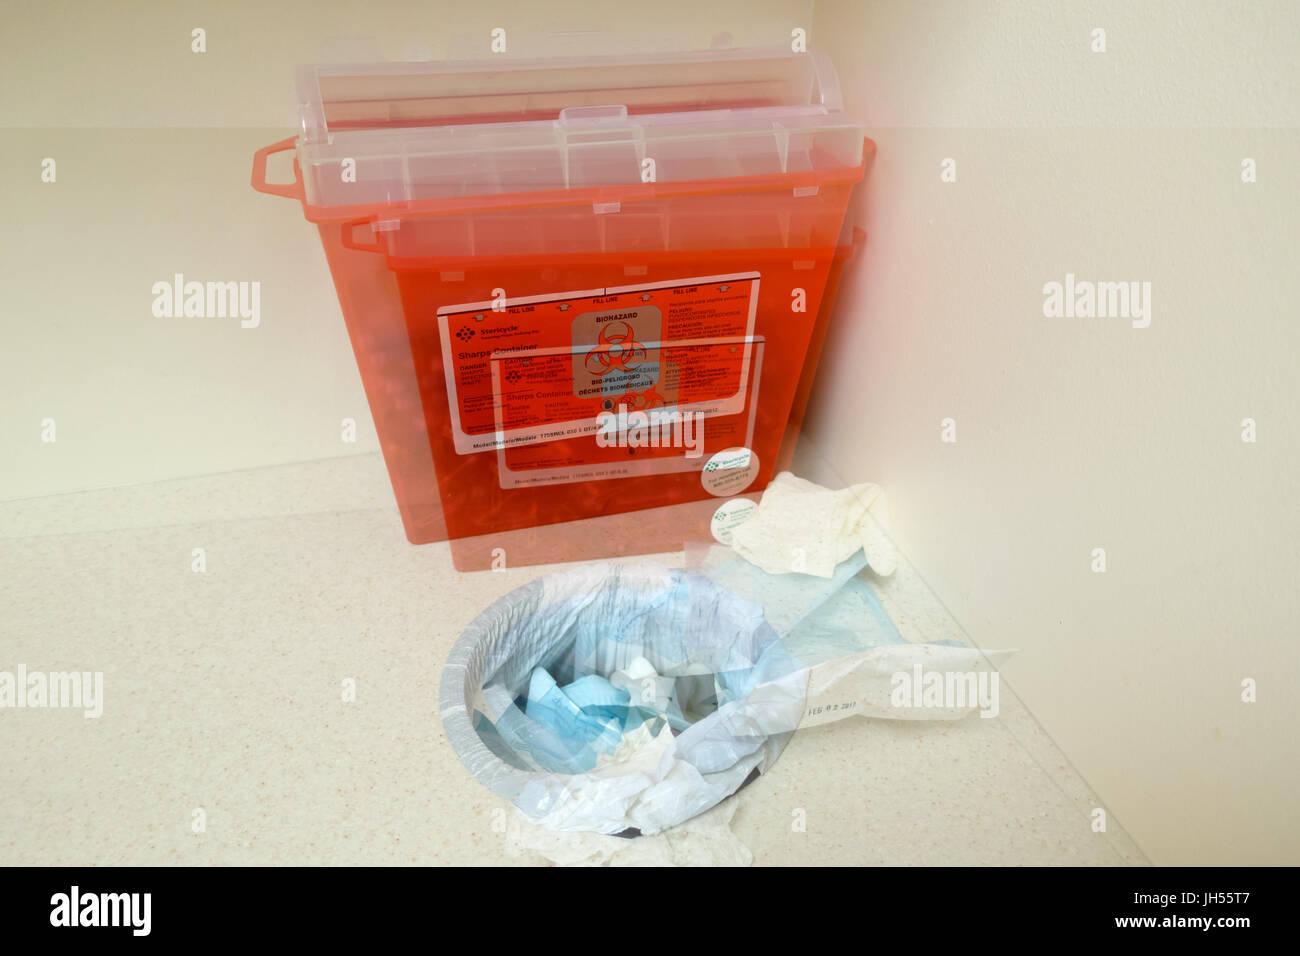 A red bio hazard box with a trash can hole spilling out garbage. - Stock Image